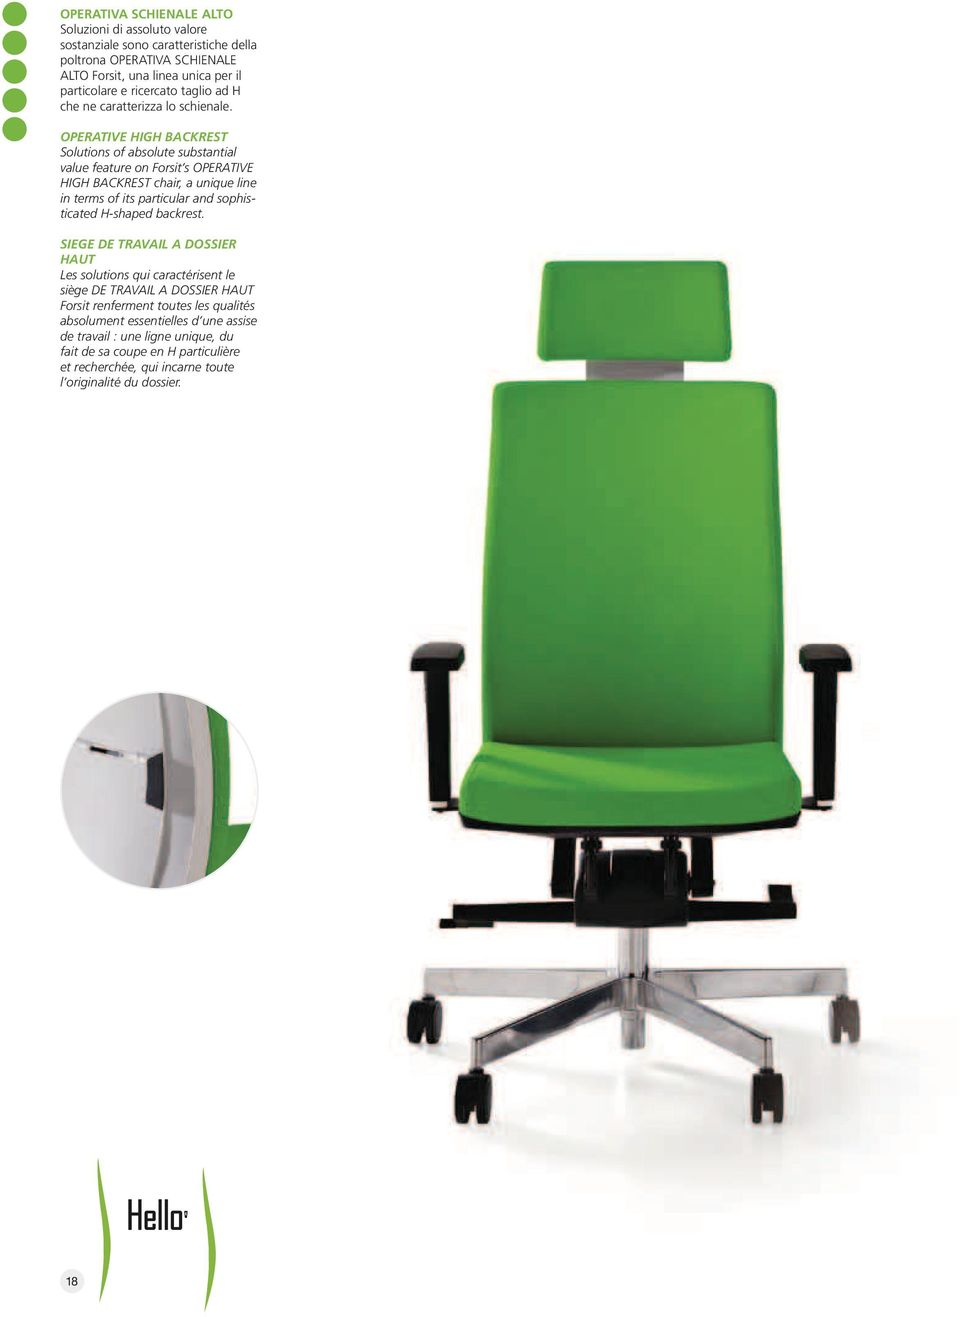 OPERATIVE HIGH BACKREST Solutions of absolute substantial value feature on Forsit s OPERATIVE HIGH BACKREST chair, a unique line in terms of its particular and sophisticated